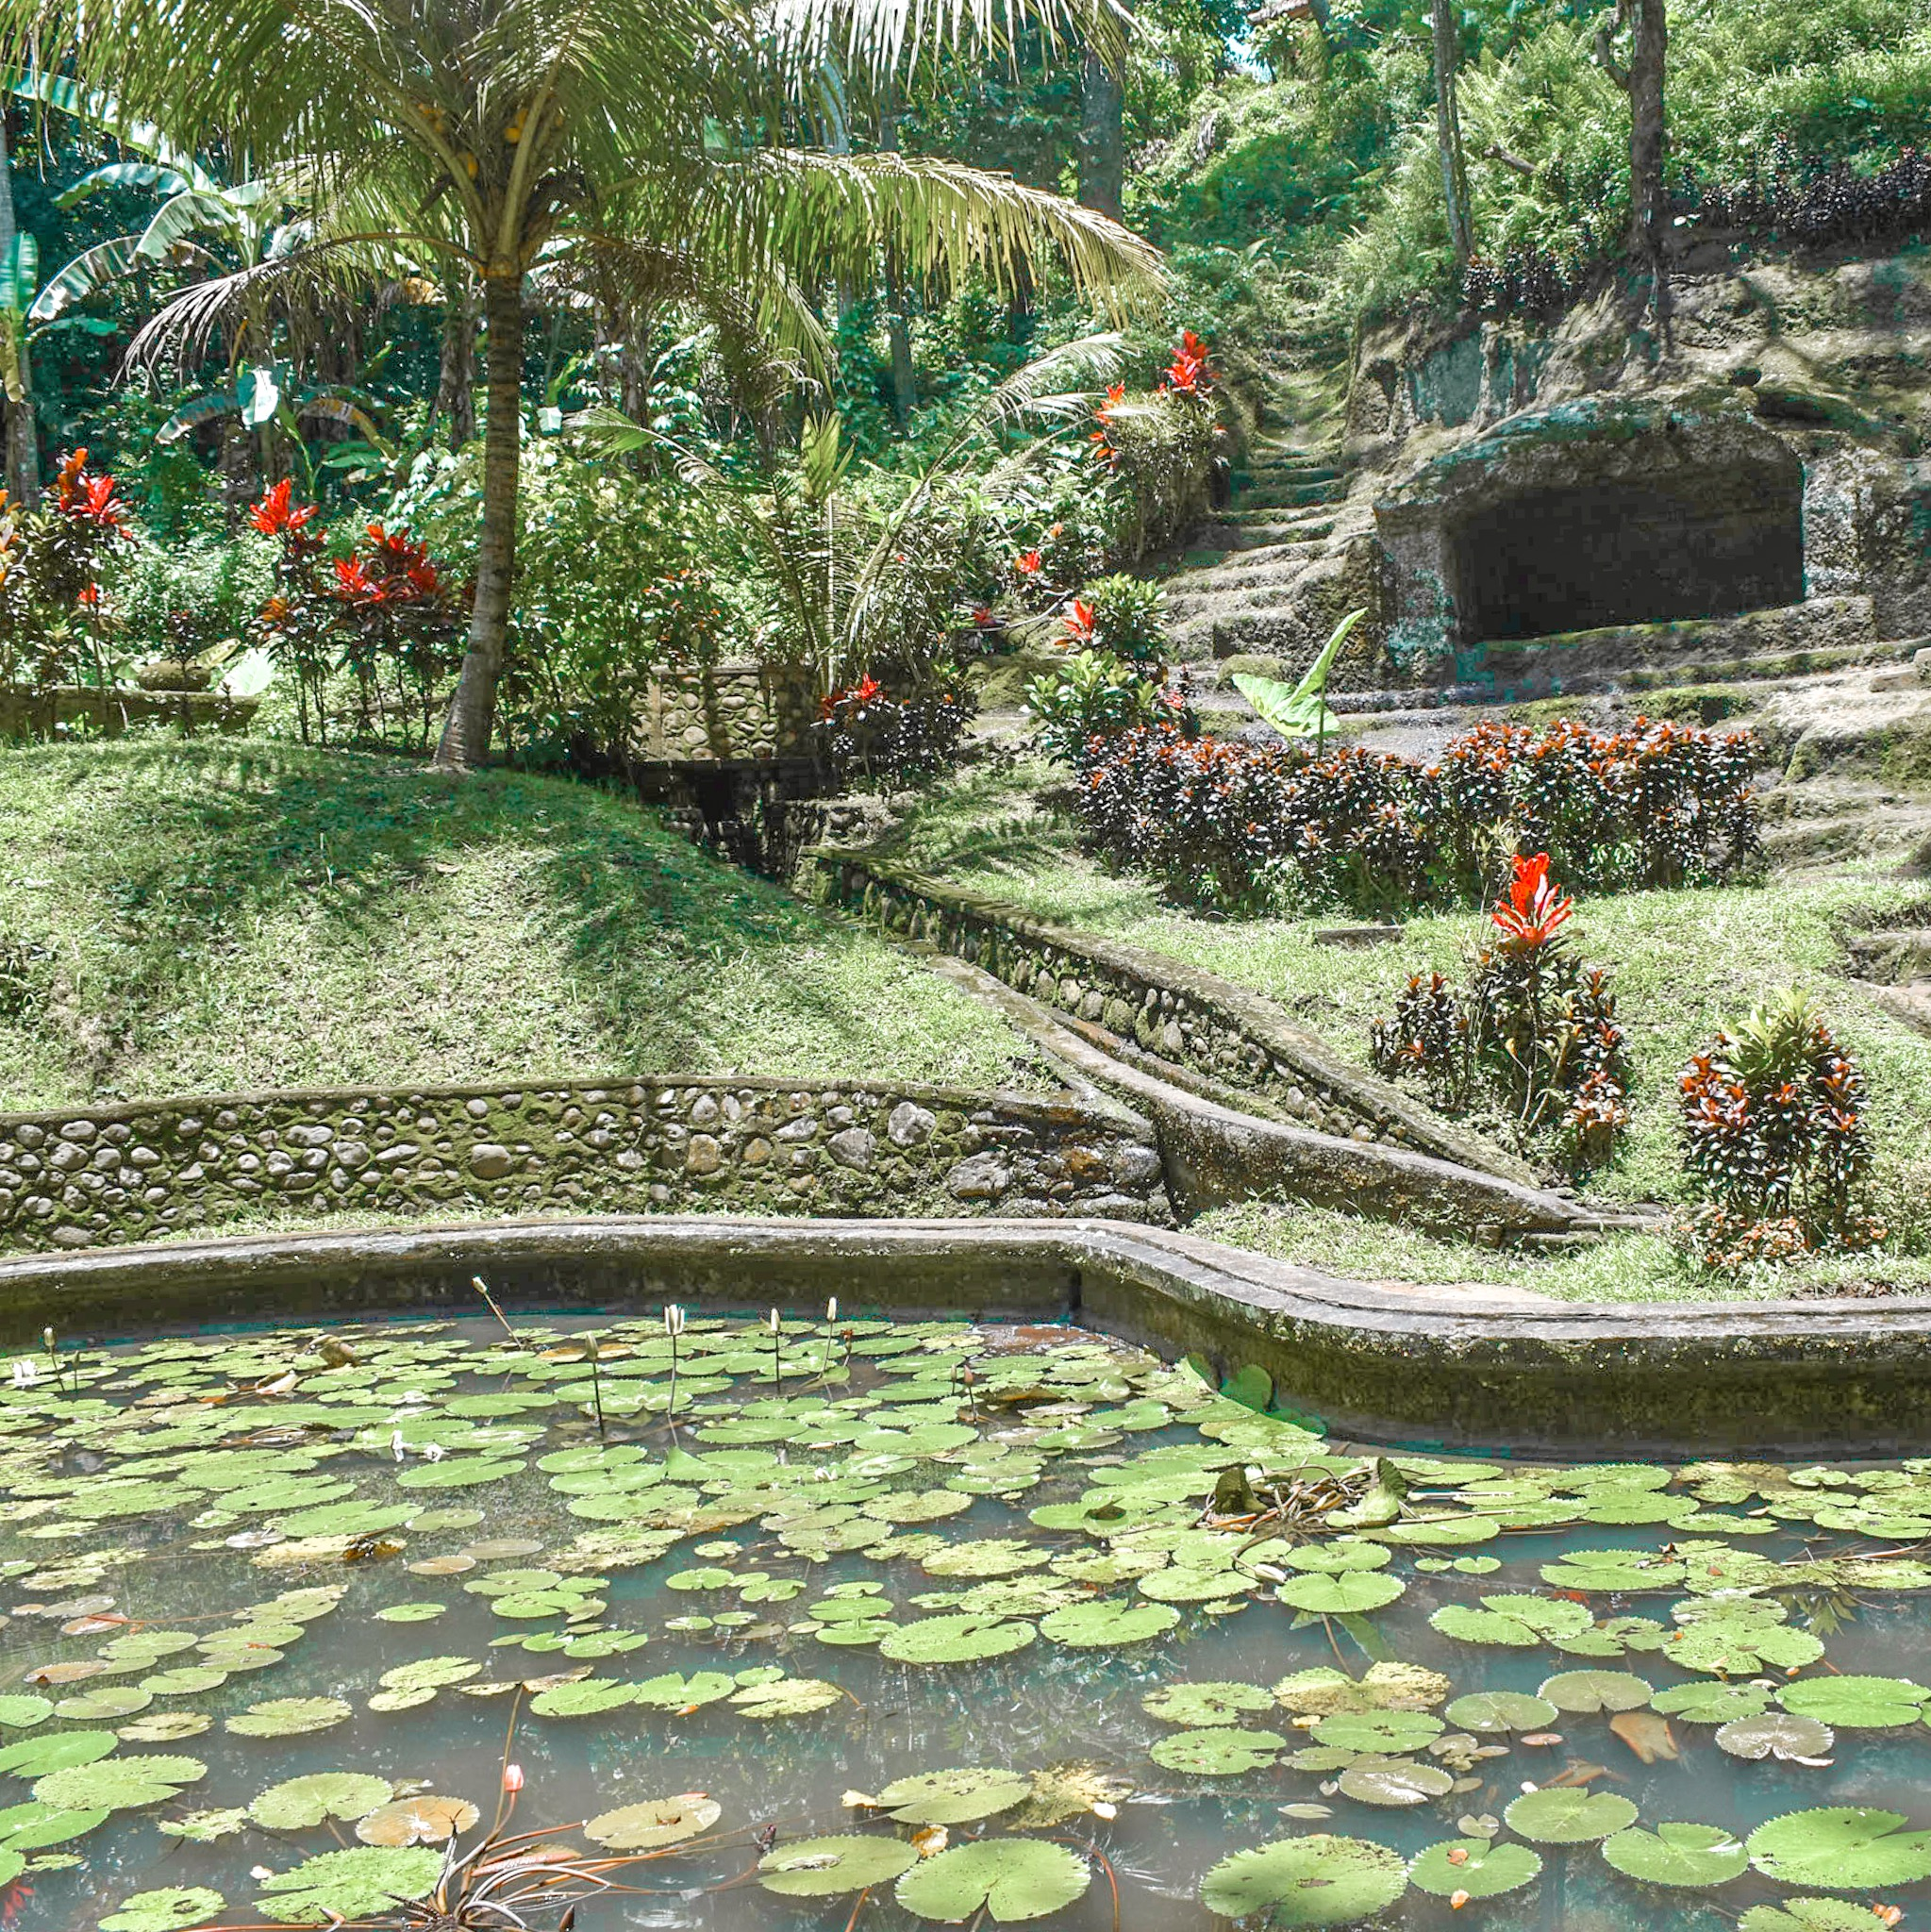 Lily Ponds and Jungle at the Elephant Cave Temple in BAli